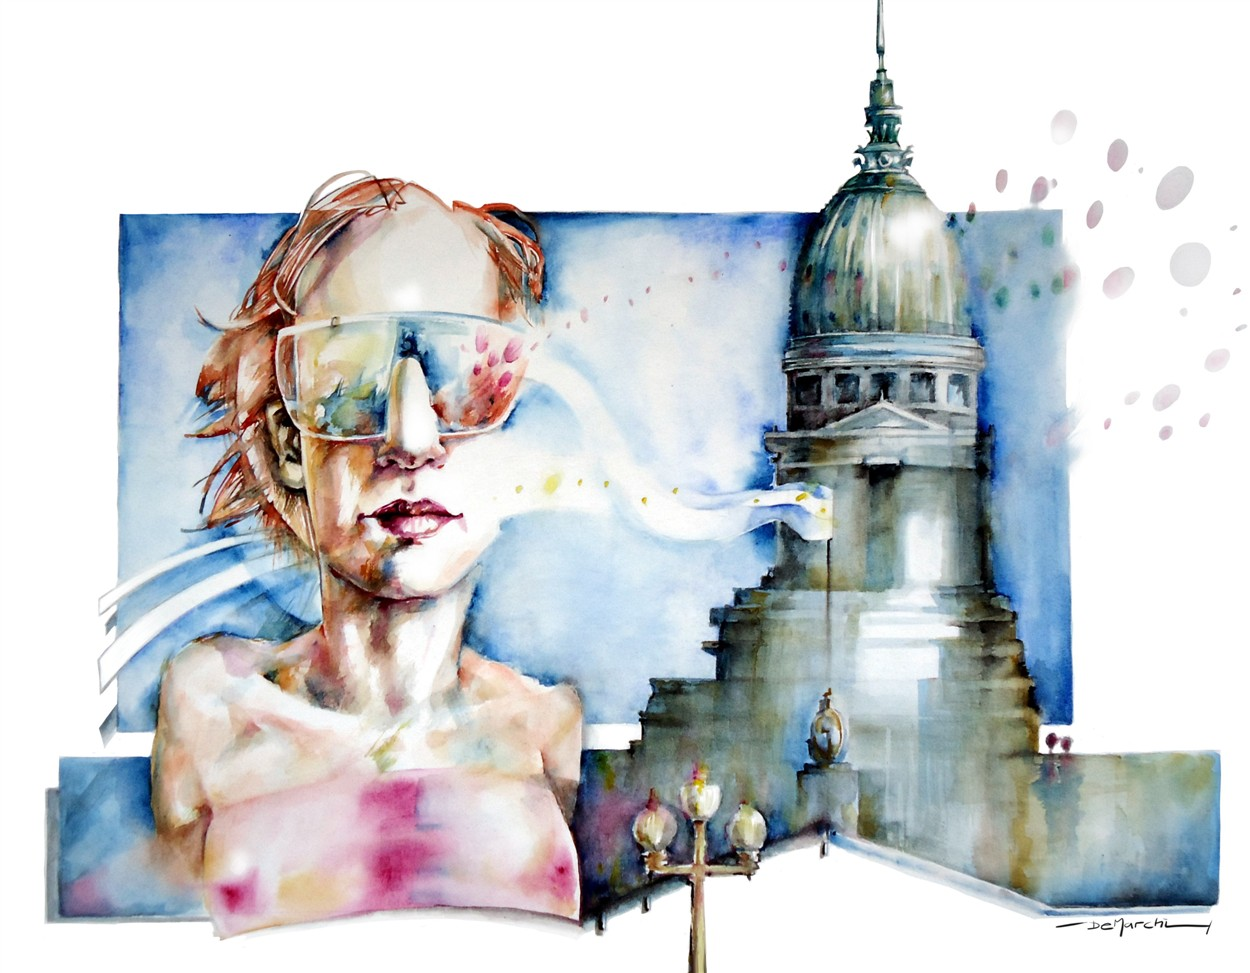 watercolor acuarela paper papel portrait woman congress mujer congreso architecture arquitectura